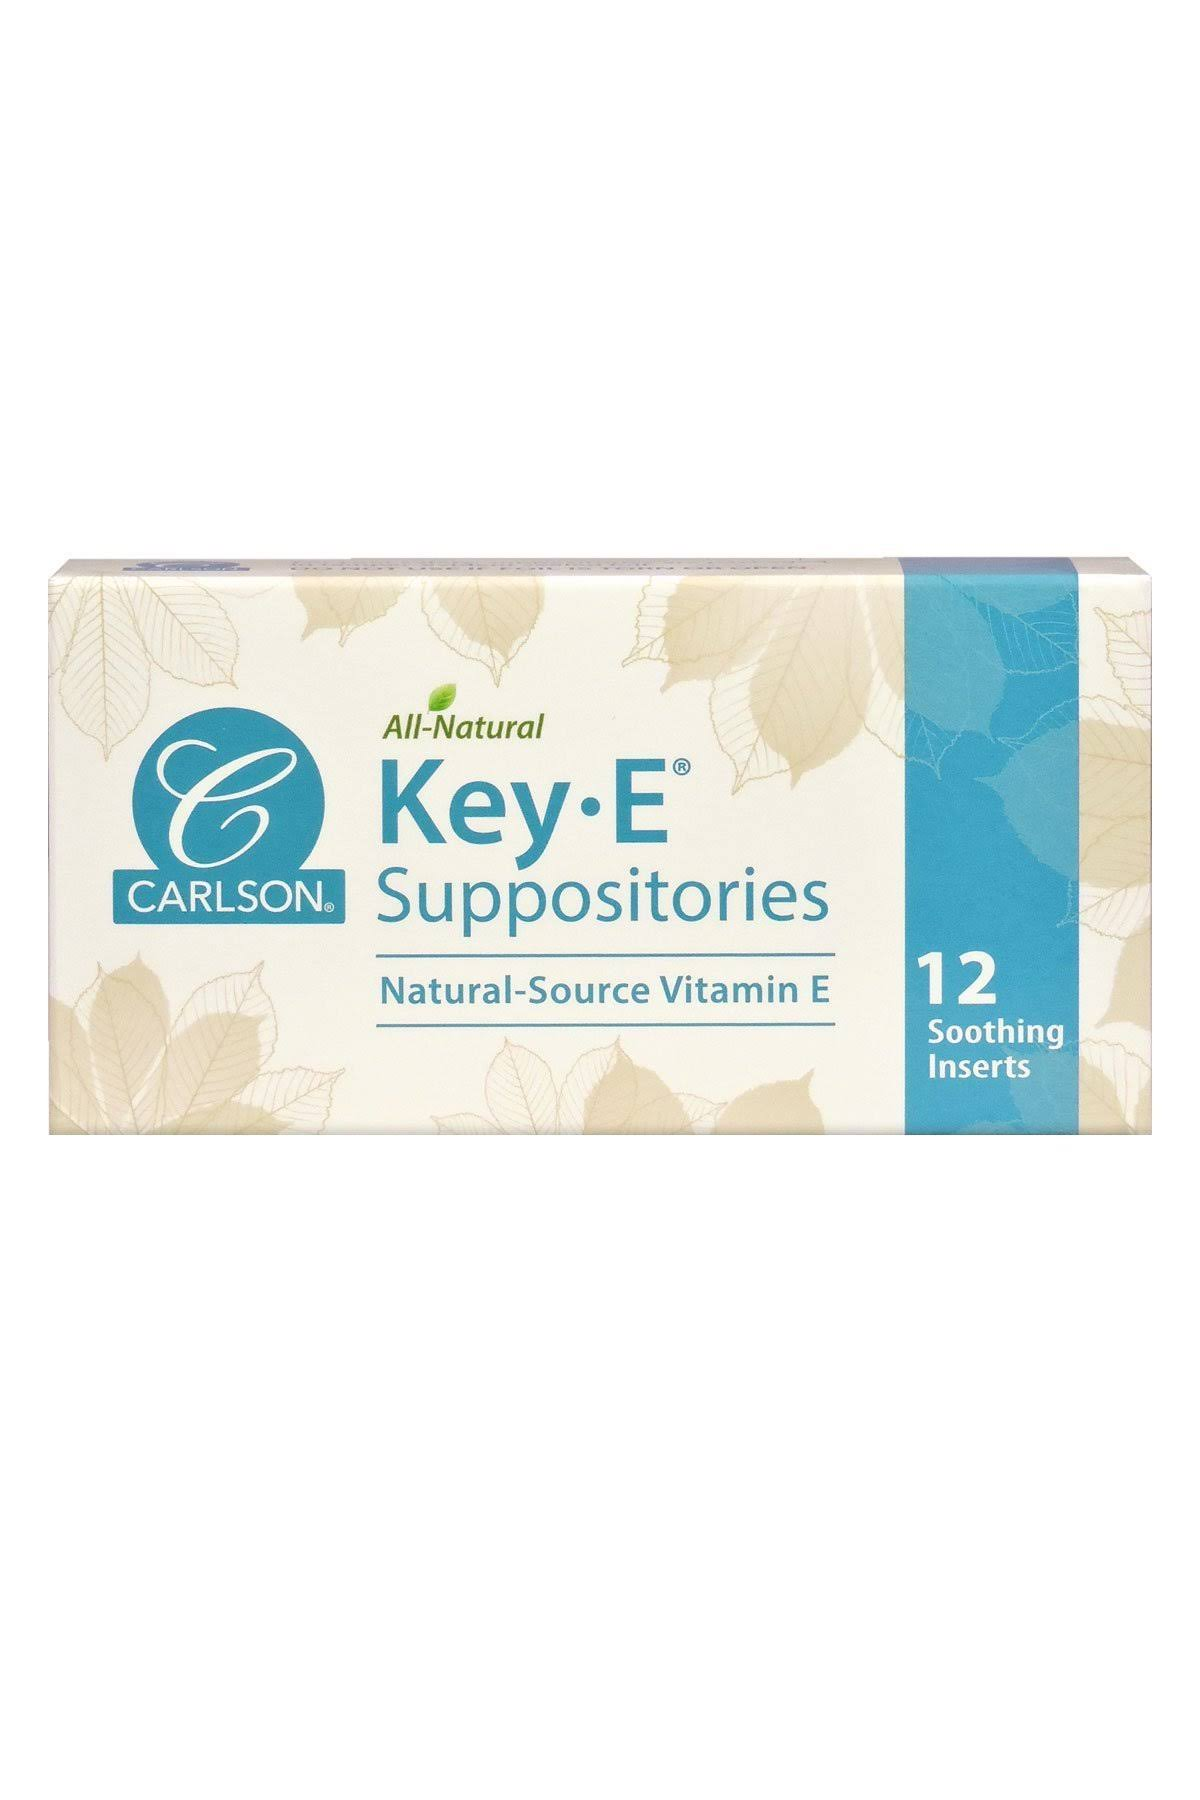 Carlson Key-E Suppositories with Vitamin E - 12 count